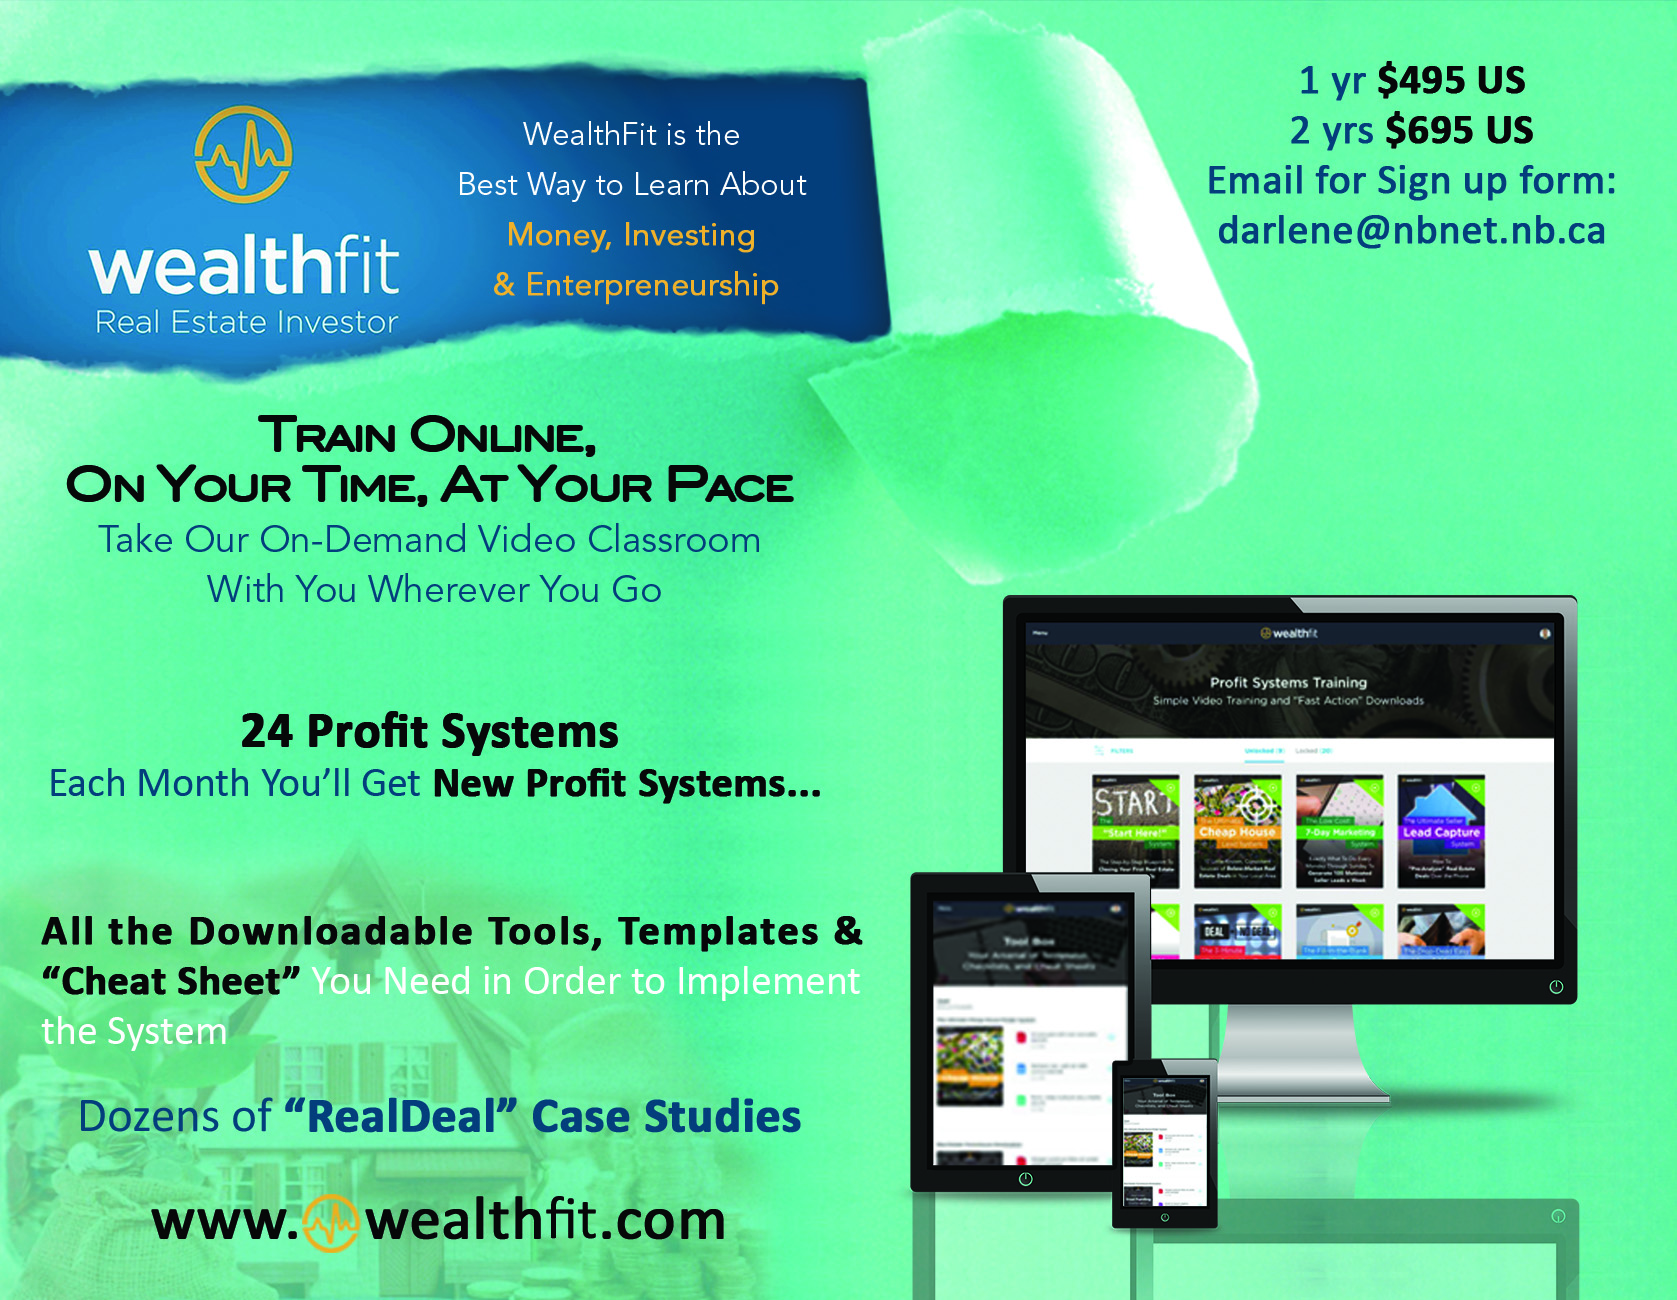 wealthfit_online-training_offer.jpg